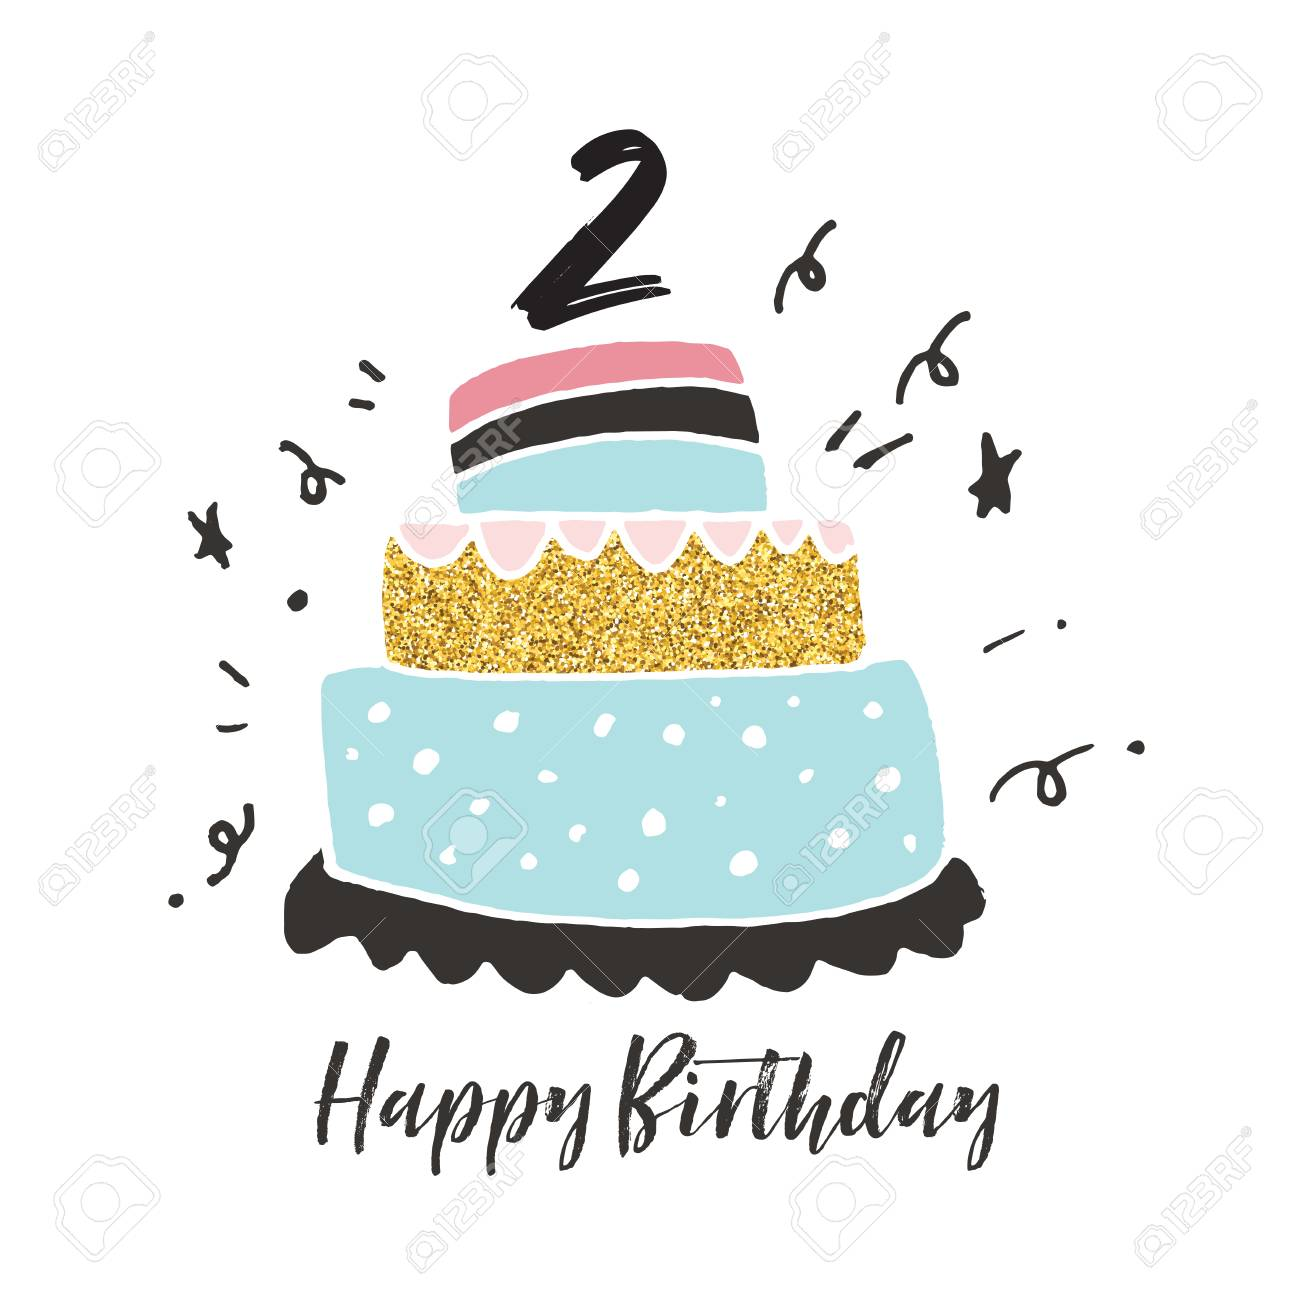 Peachy 2Nd Birthday Hand Drawn Cake Birthday Card Stock Photo Picture Funny Birthday Cards Online Inifodamsfinfo